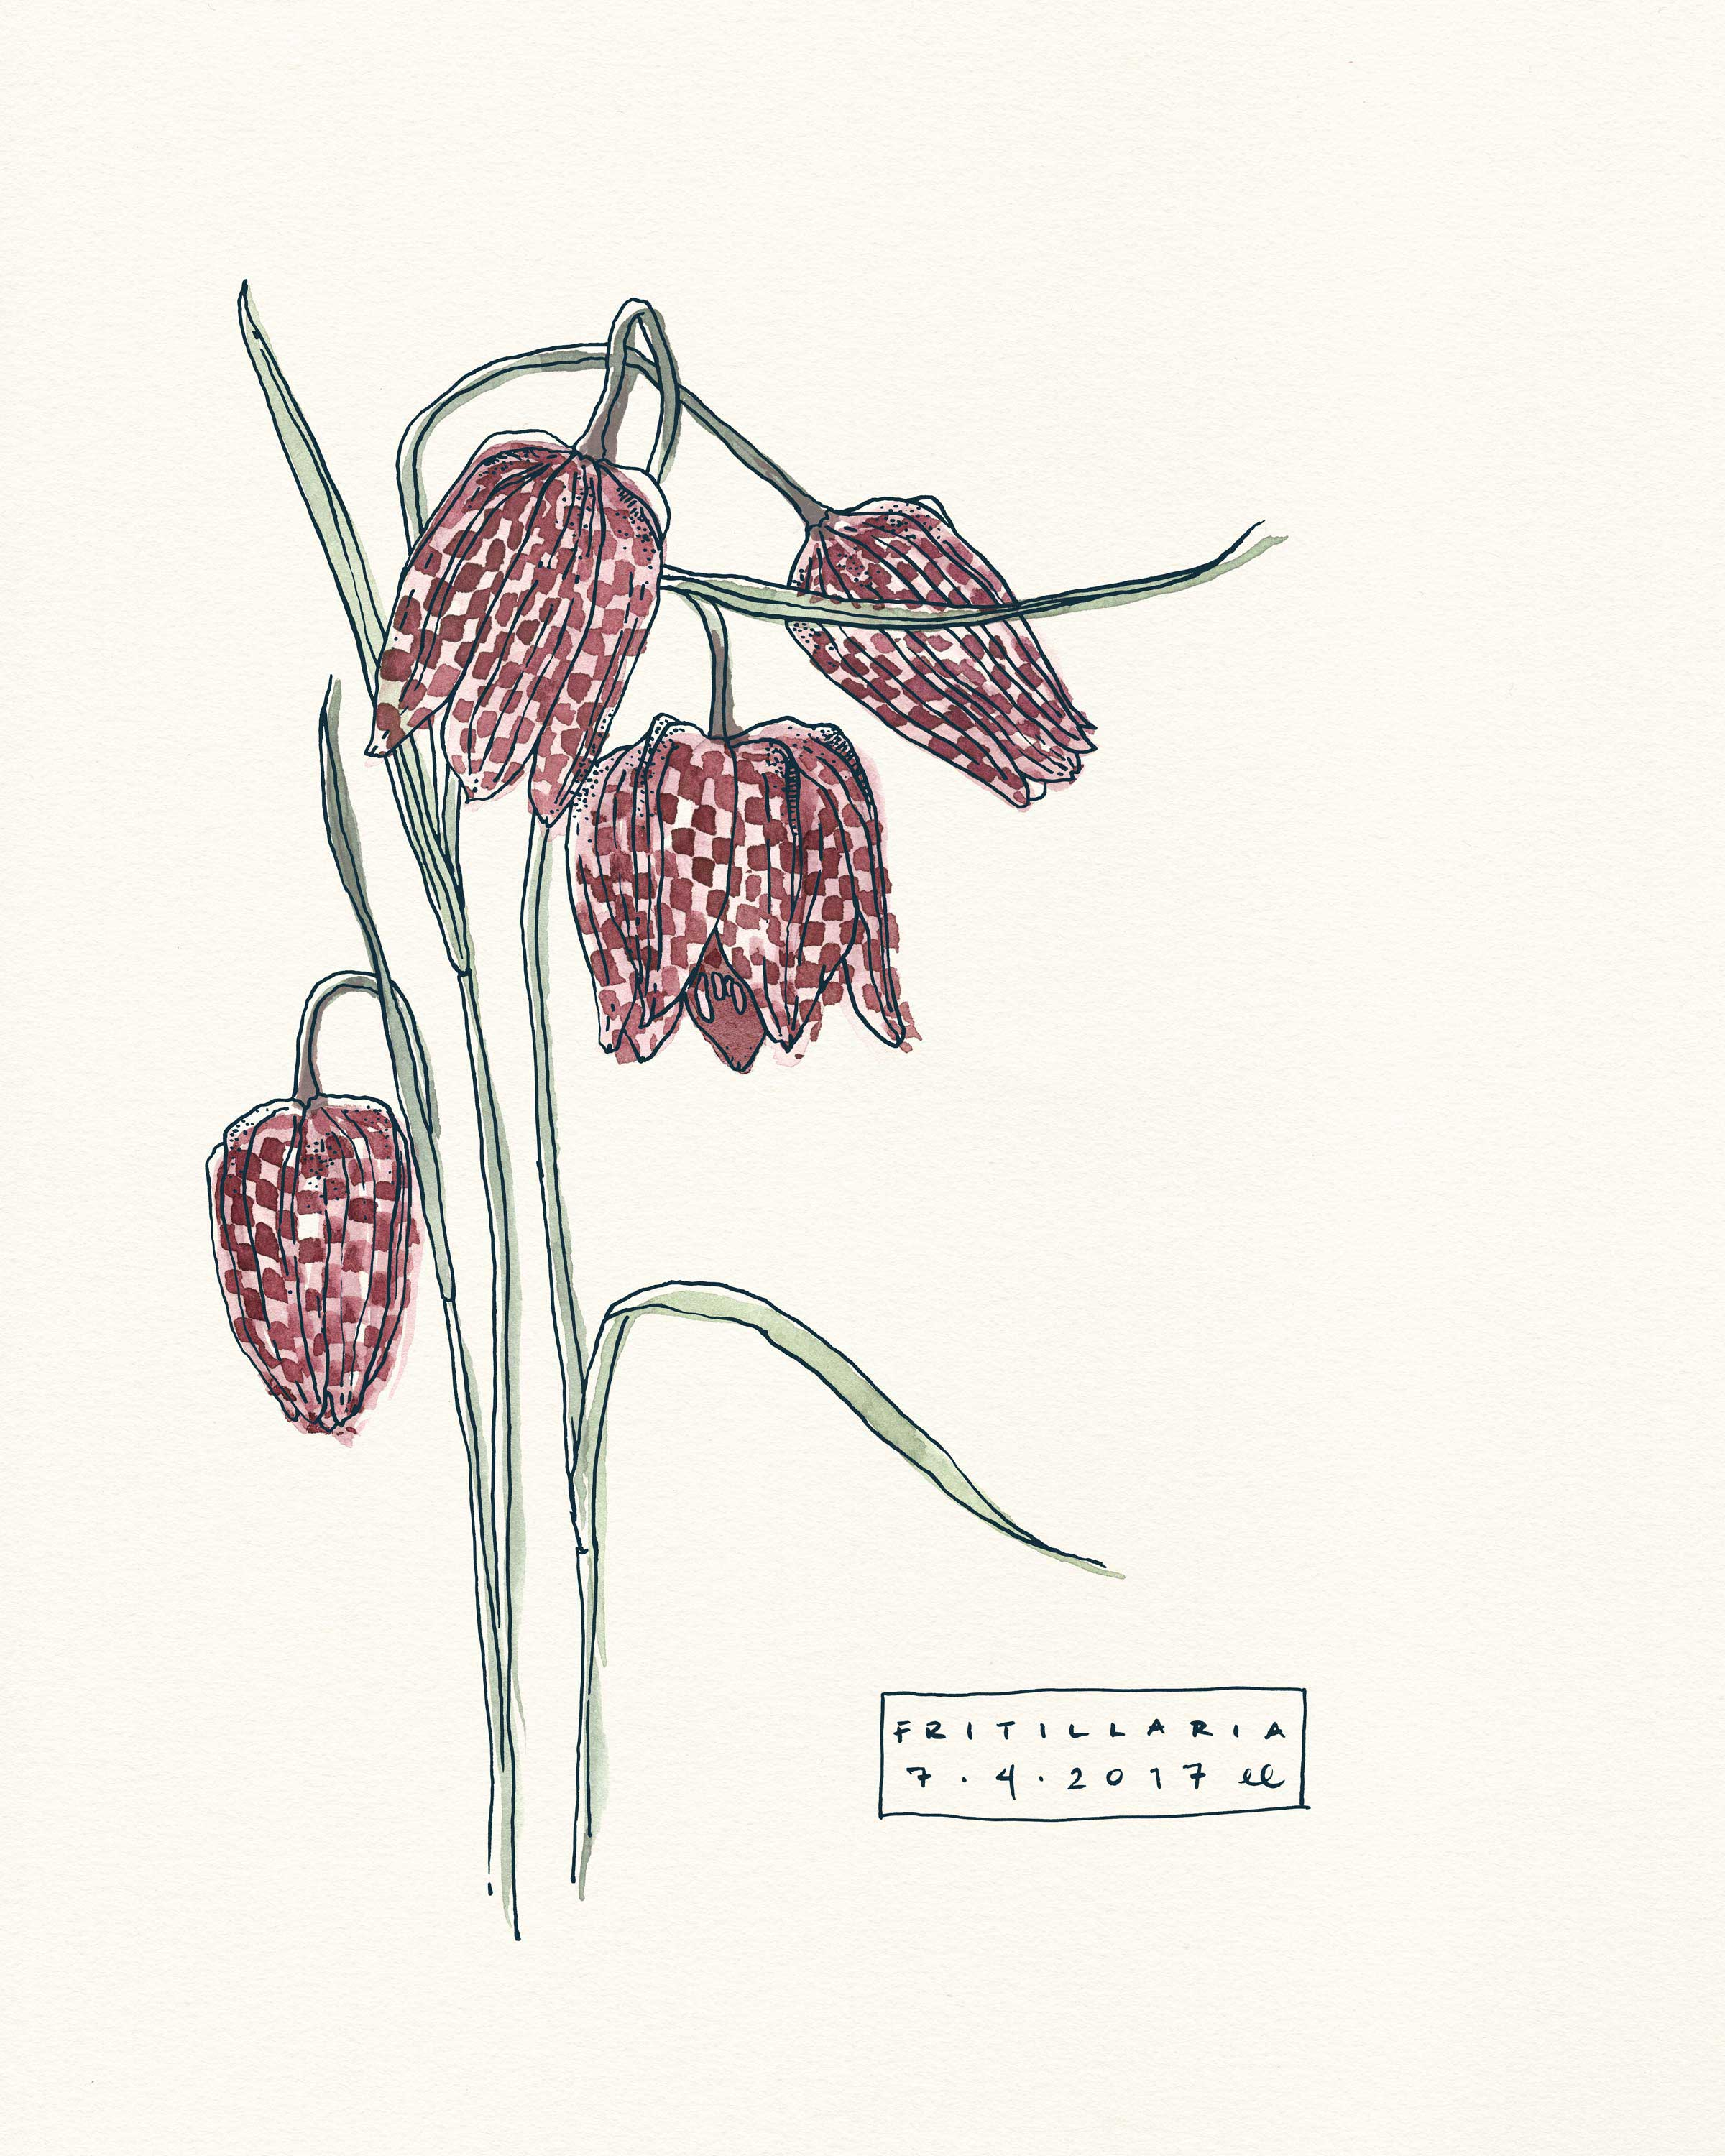 Fritillaria Botanical Illustration